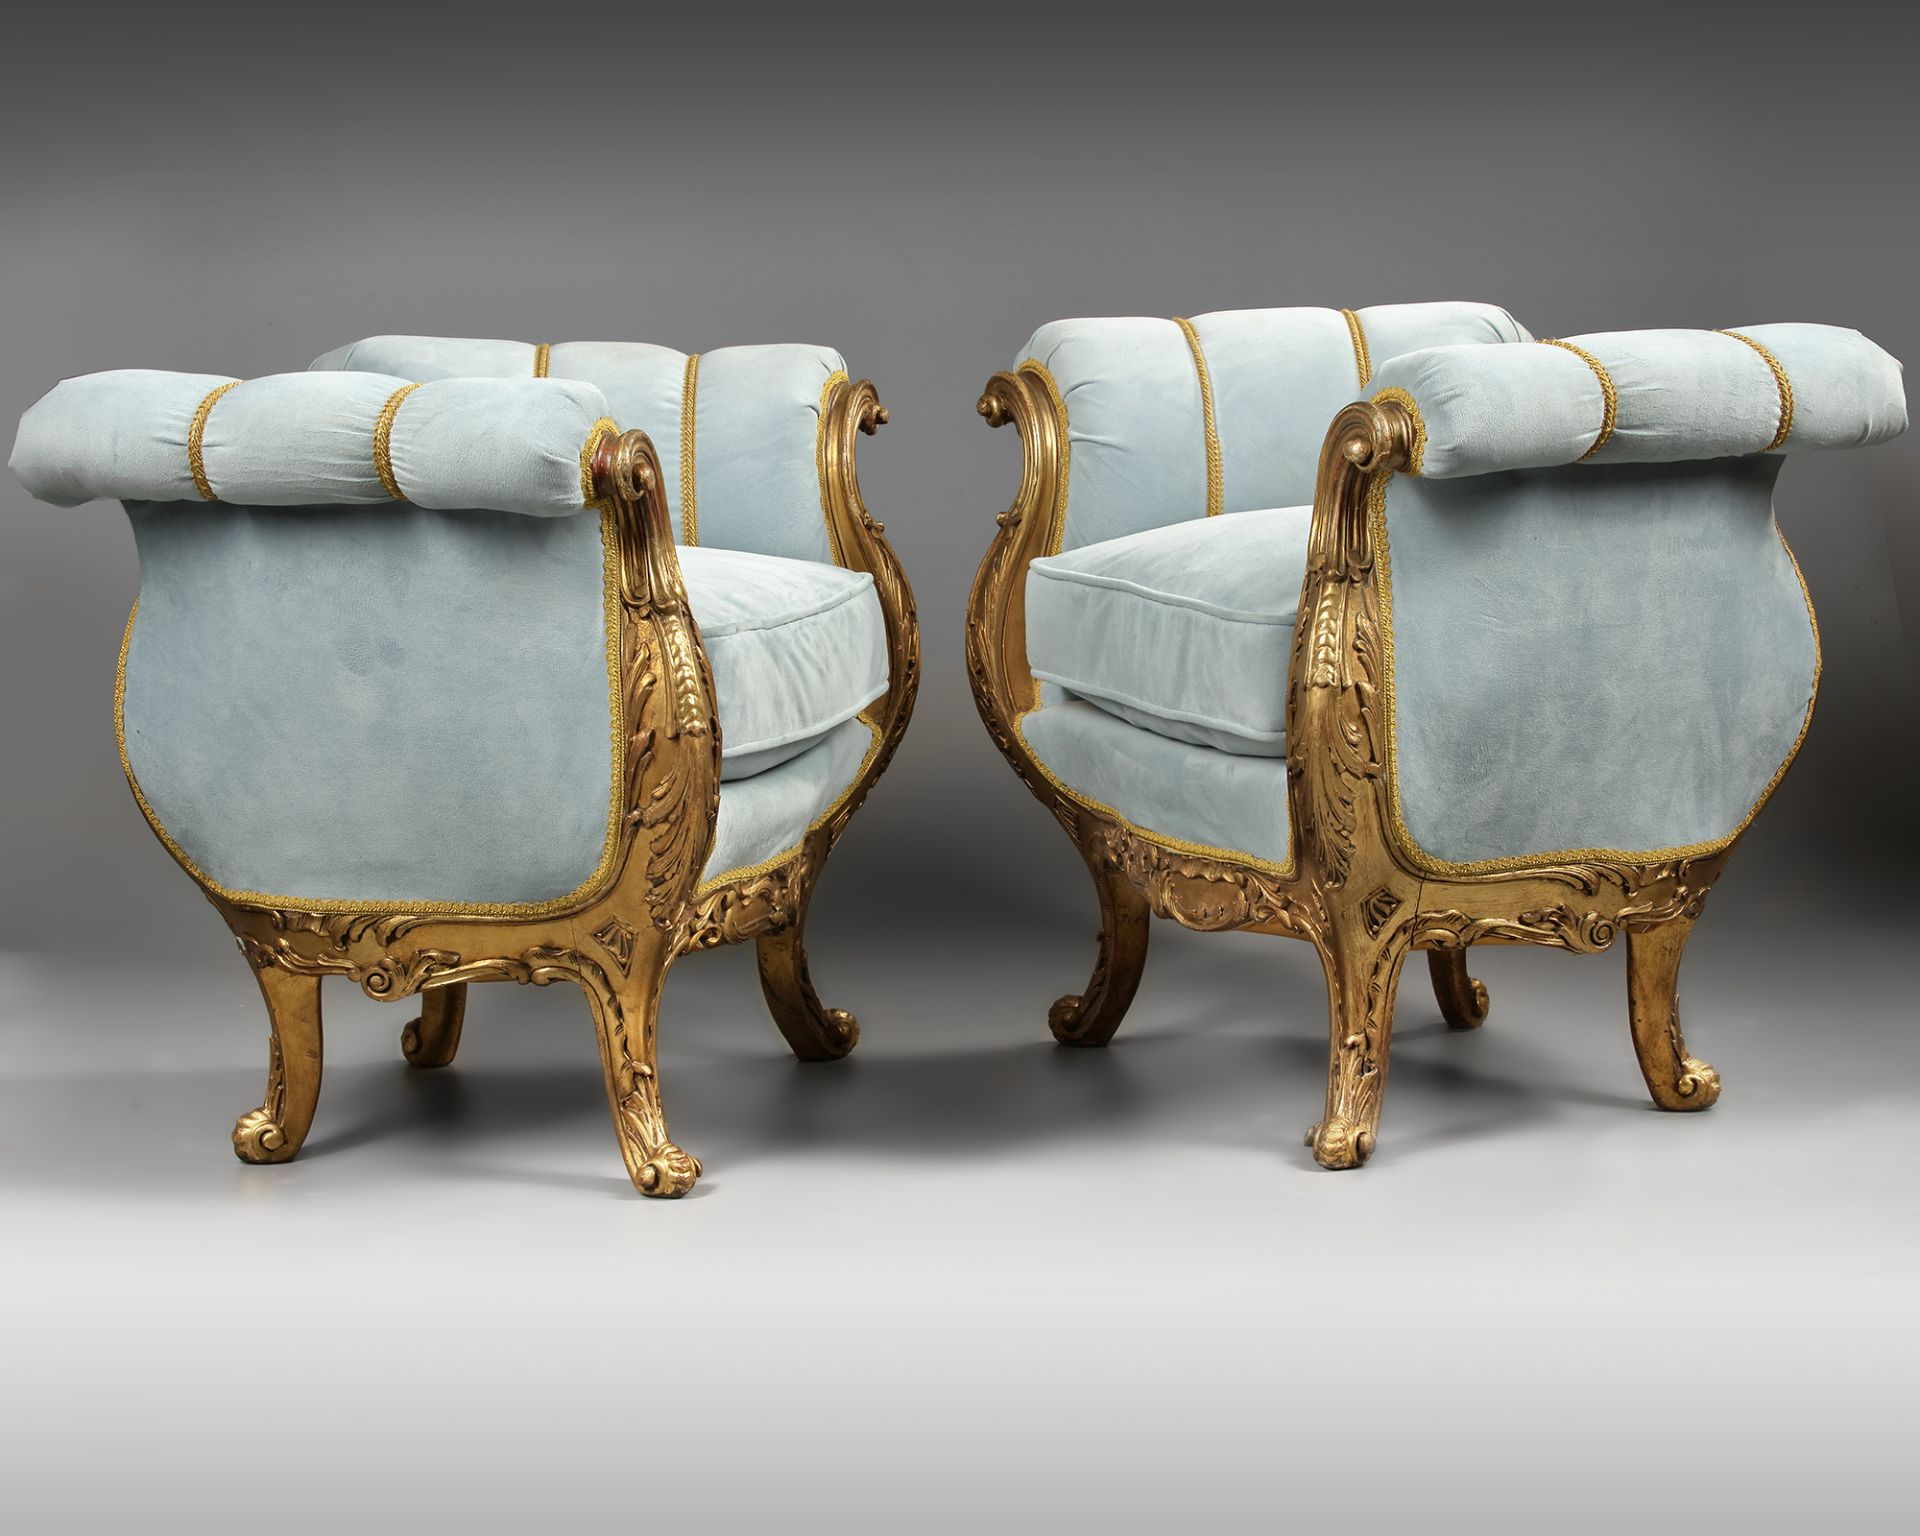 A PAIR OF FRENCH LOUIS XV STYLE GILT WOOD POUFS, LATE 19TH CENTURY